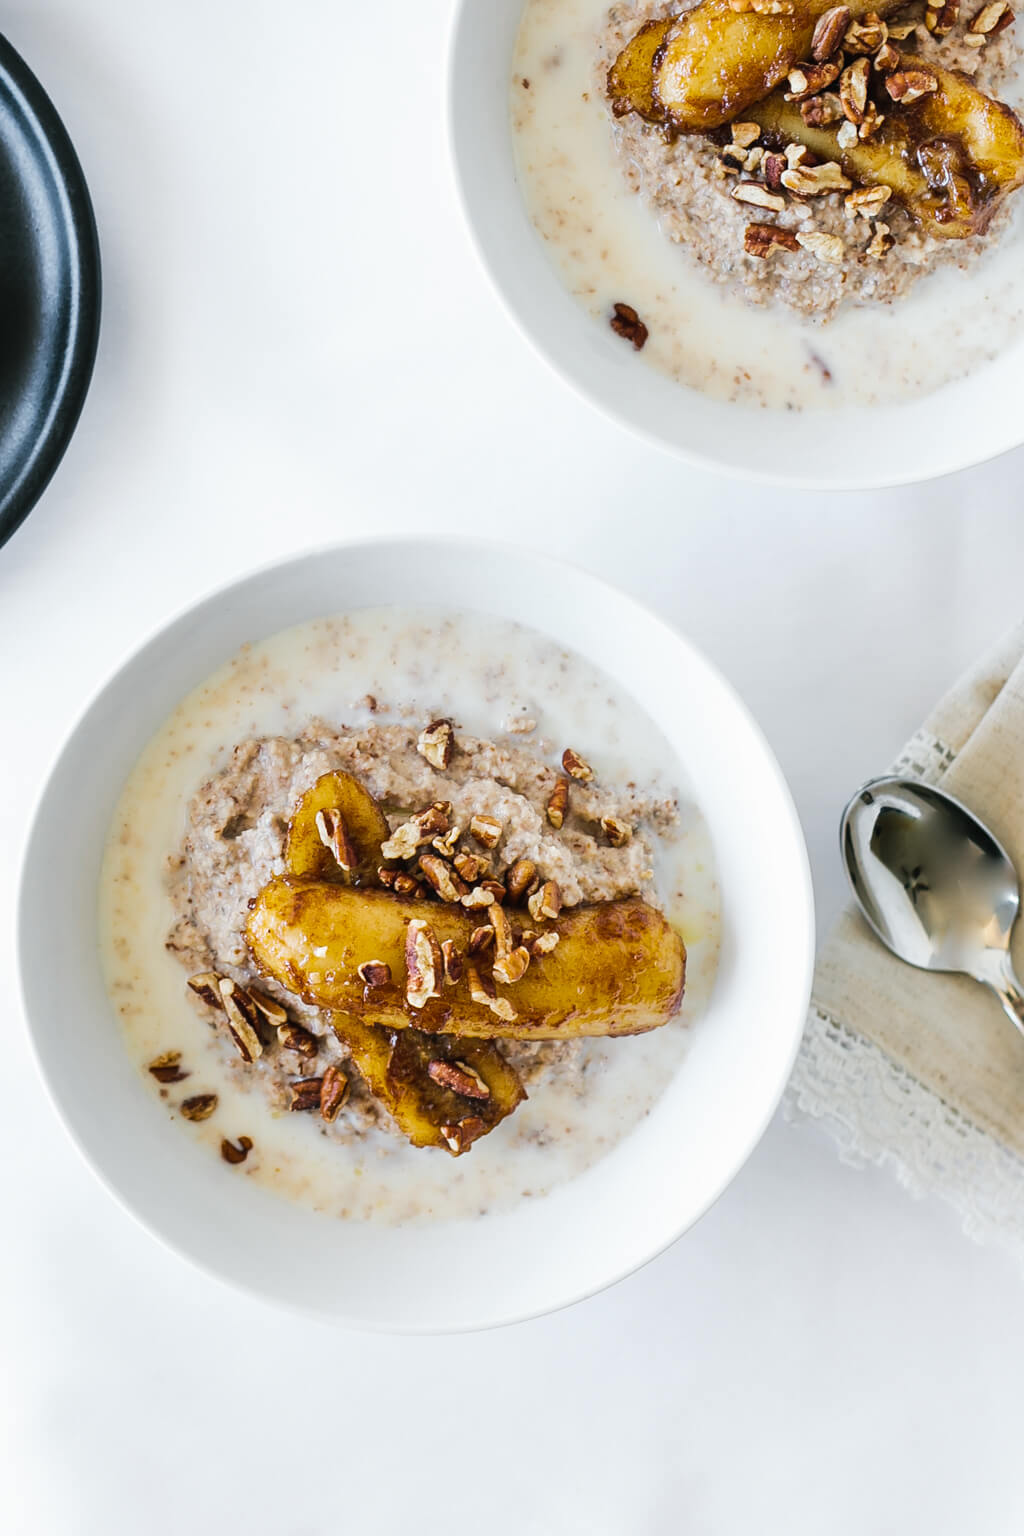 Paleo porridge with caramelized bananas. A delicious gluten-free, grain-free, dairy-free, paleo breakfast recipe.